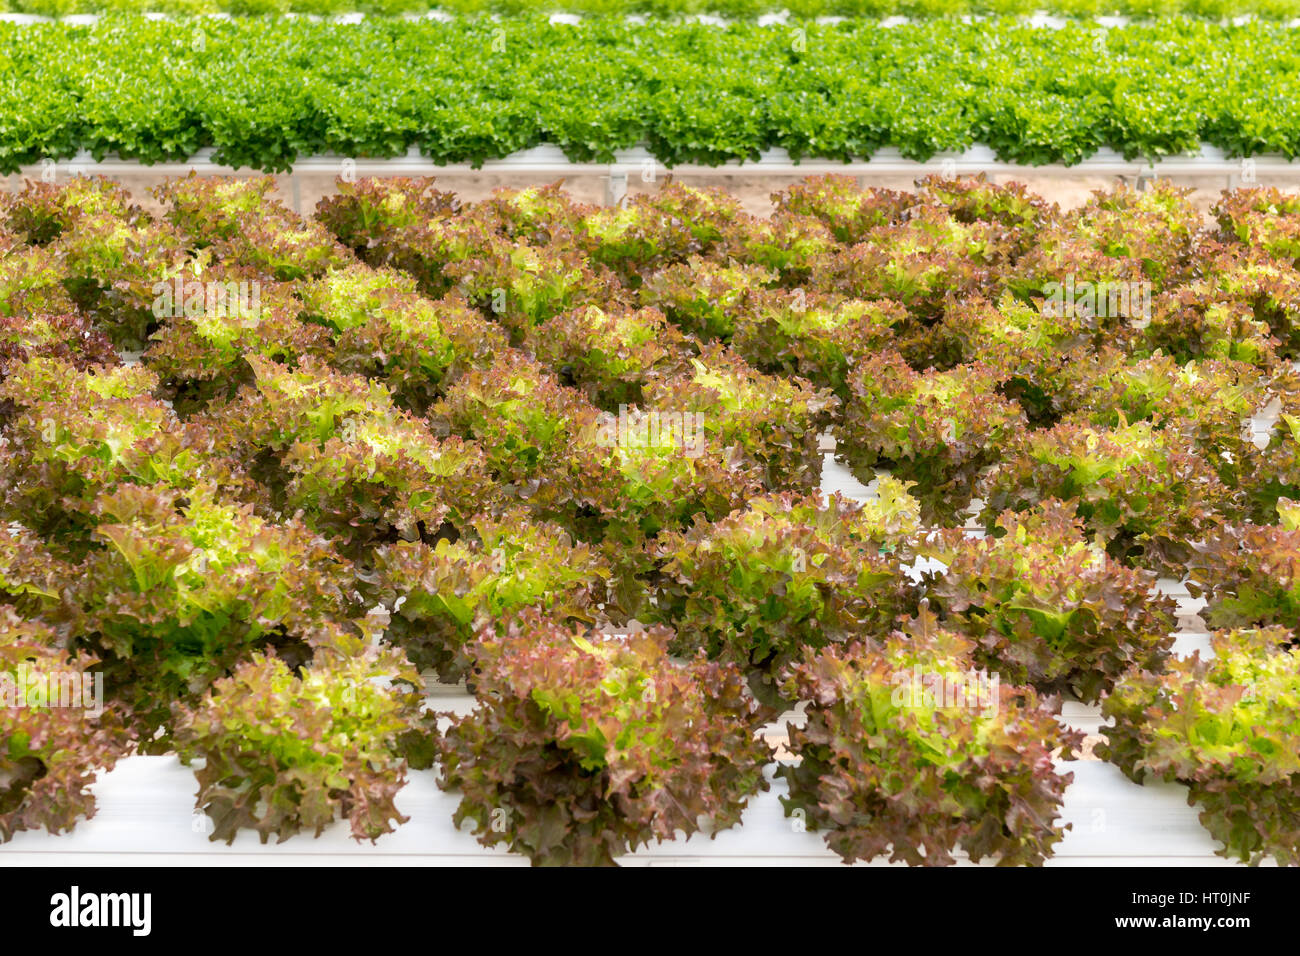 Hydroponic Dünger Lettuce Cultivation On Hydroponic System With Water And Fertilizer